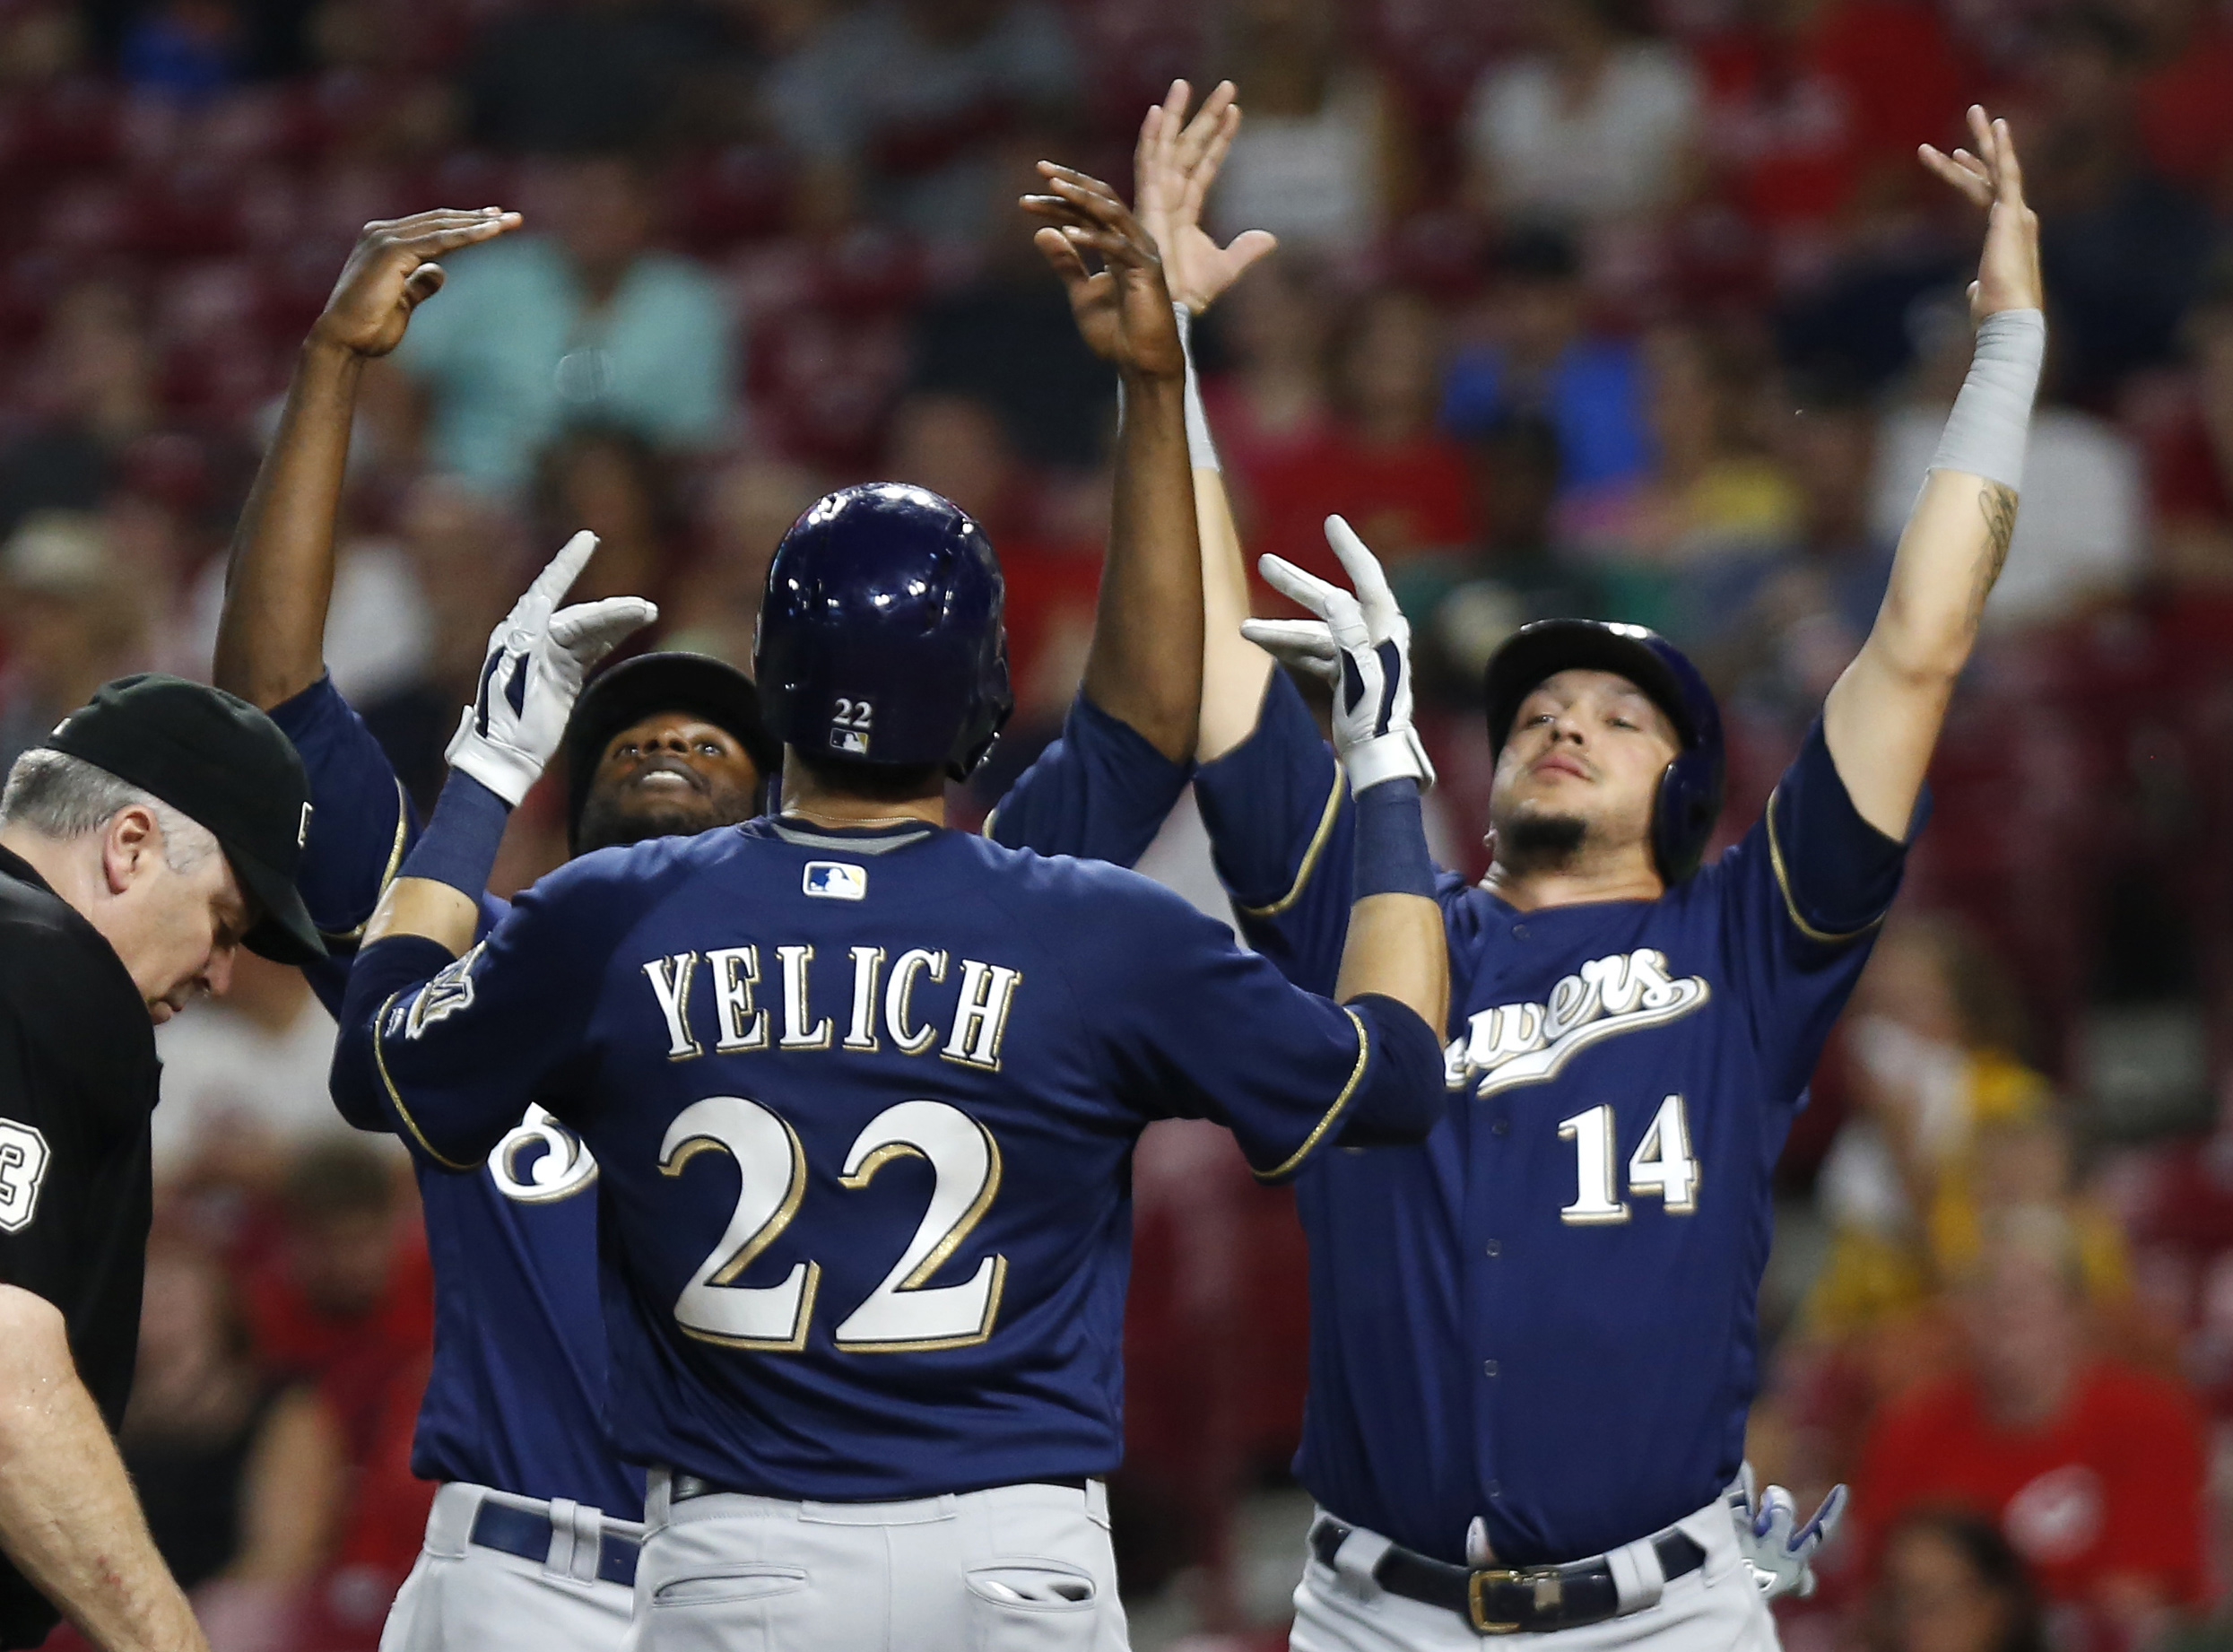 Watch Christian Yelich hit for cycle against Reds